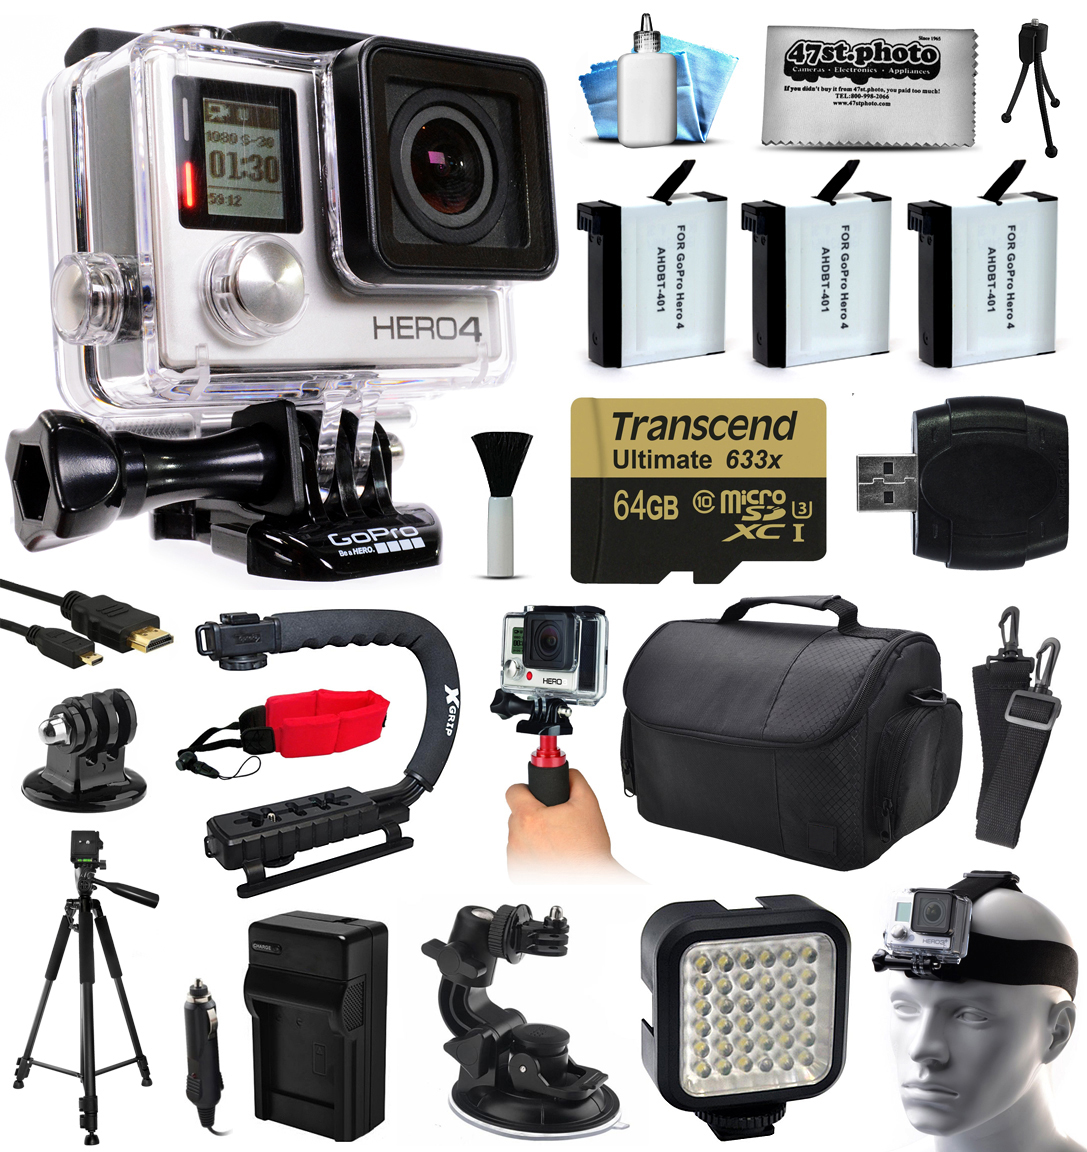 GoPro Hero 4 HERO4 Black Edition 4K Action Camera Camcorder with 64GB MicroSD, 3x Battery, Charger, Large Case, Handle, Tripod, Car Mount, LED Video Light, Head Helmet Strap, Cleaning Kit